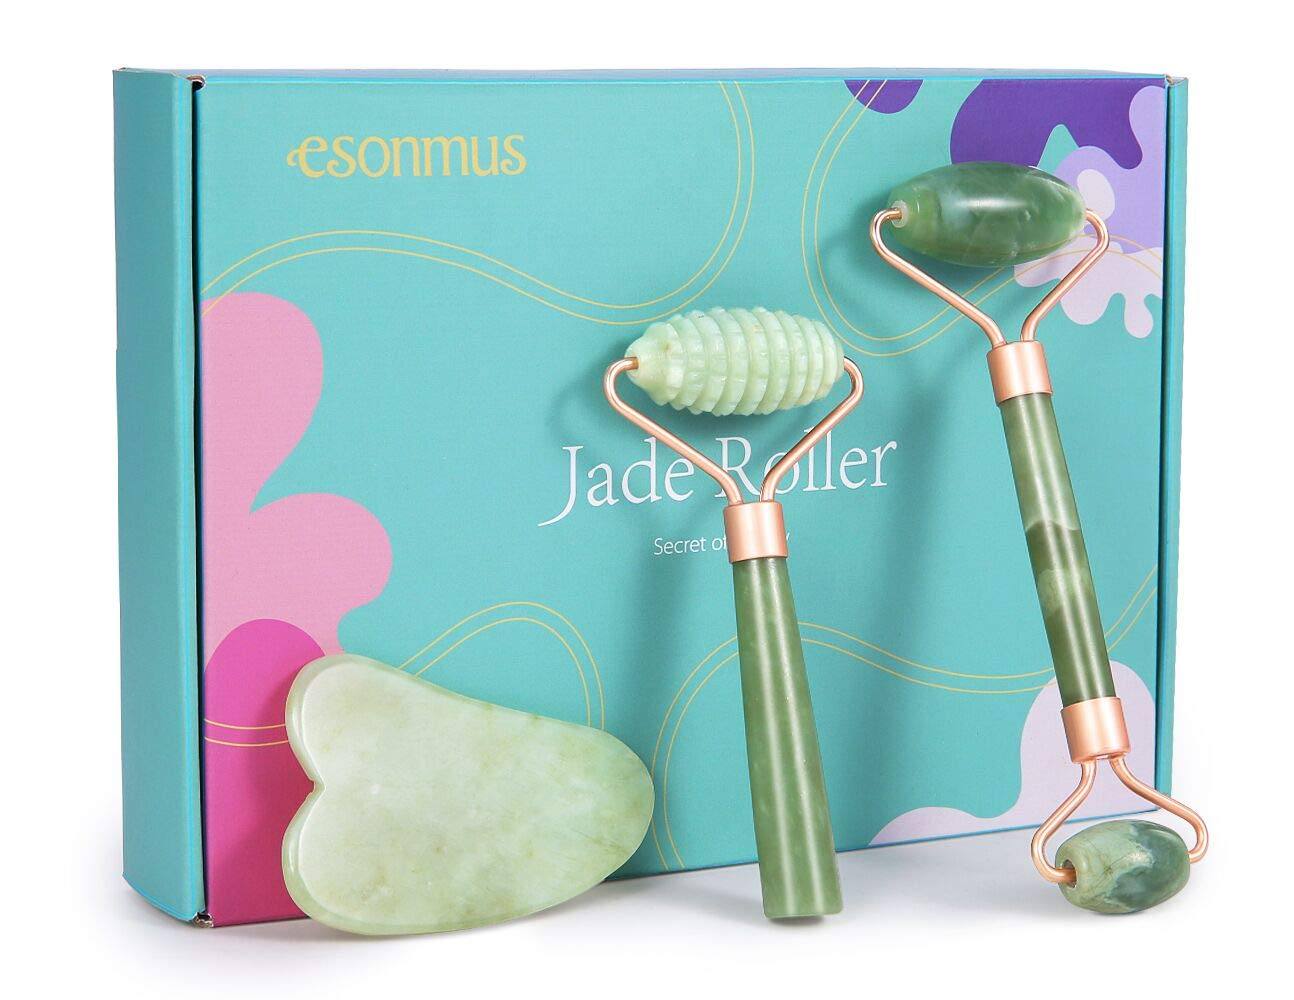 esonmus Jade Roller For Face, 3 in 1 Jade Face Roller Set with Gua Sha Massager Tool, 100% Real Natural Jade Stone Roller for Face, Eye, Neck, Anti Aging, Reduce Wrinkles by esonmus